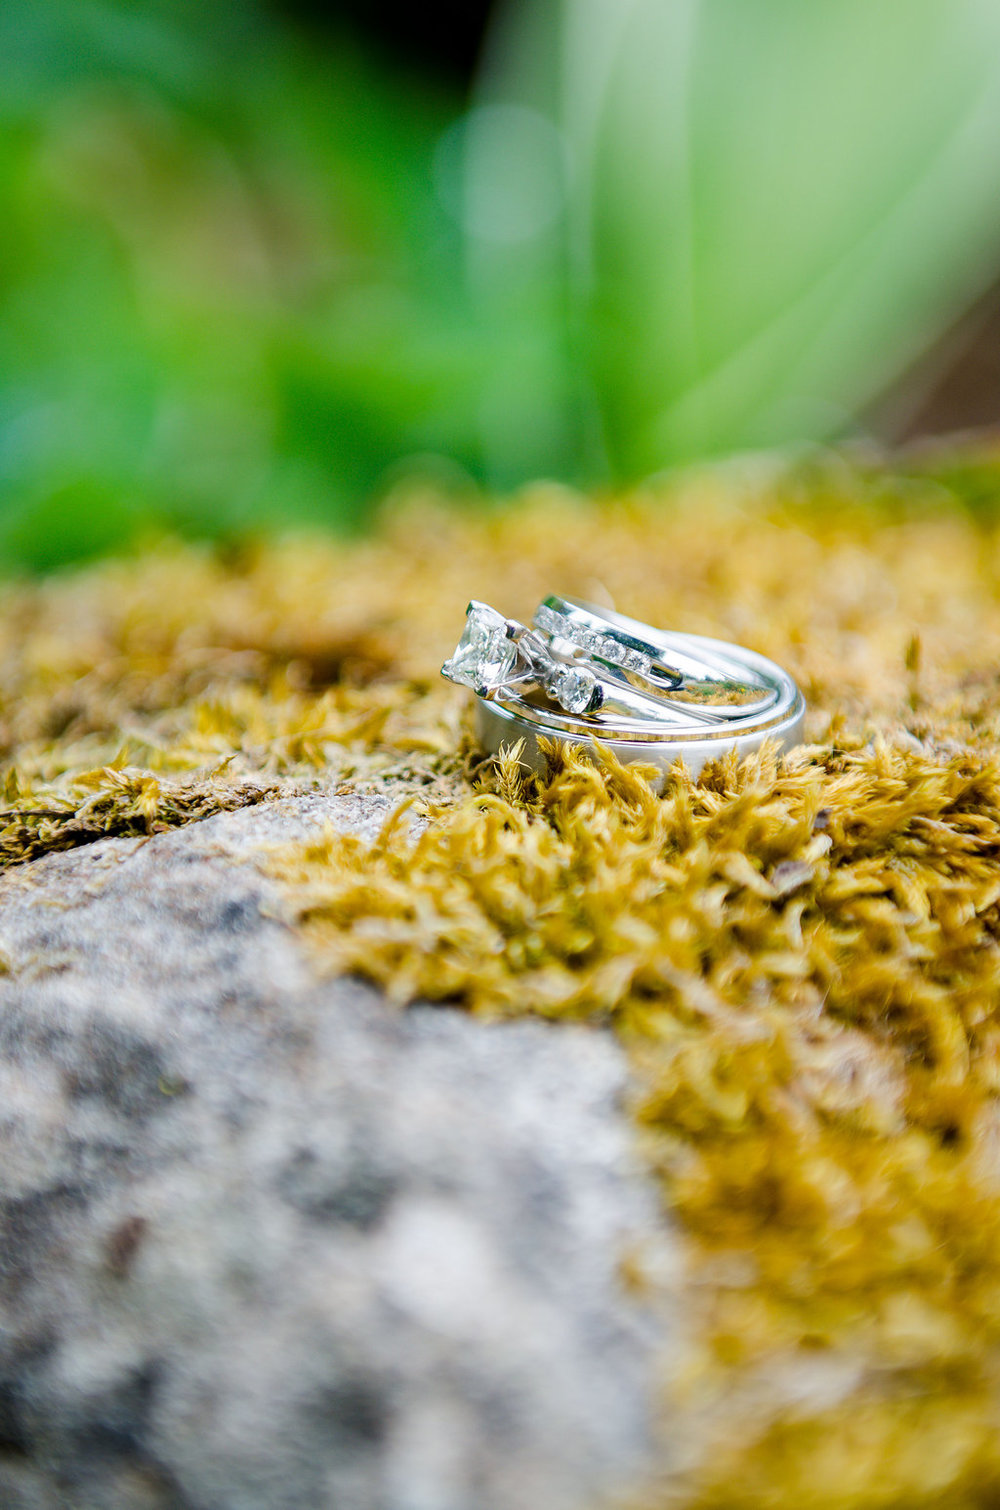 Danny-May-Wedding-Rings-Sheryl-Bale-Photography.jpg